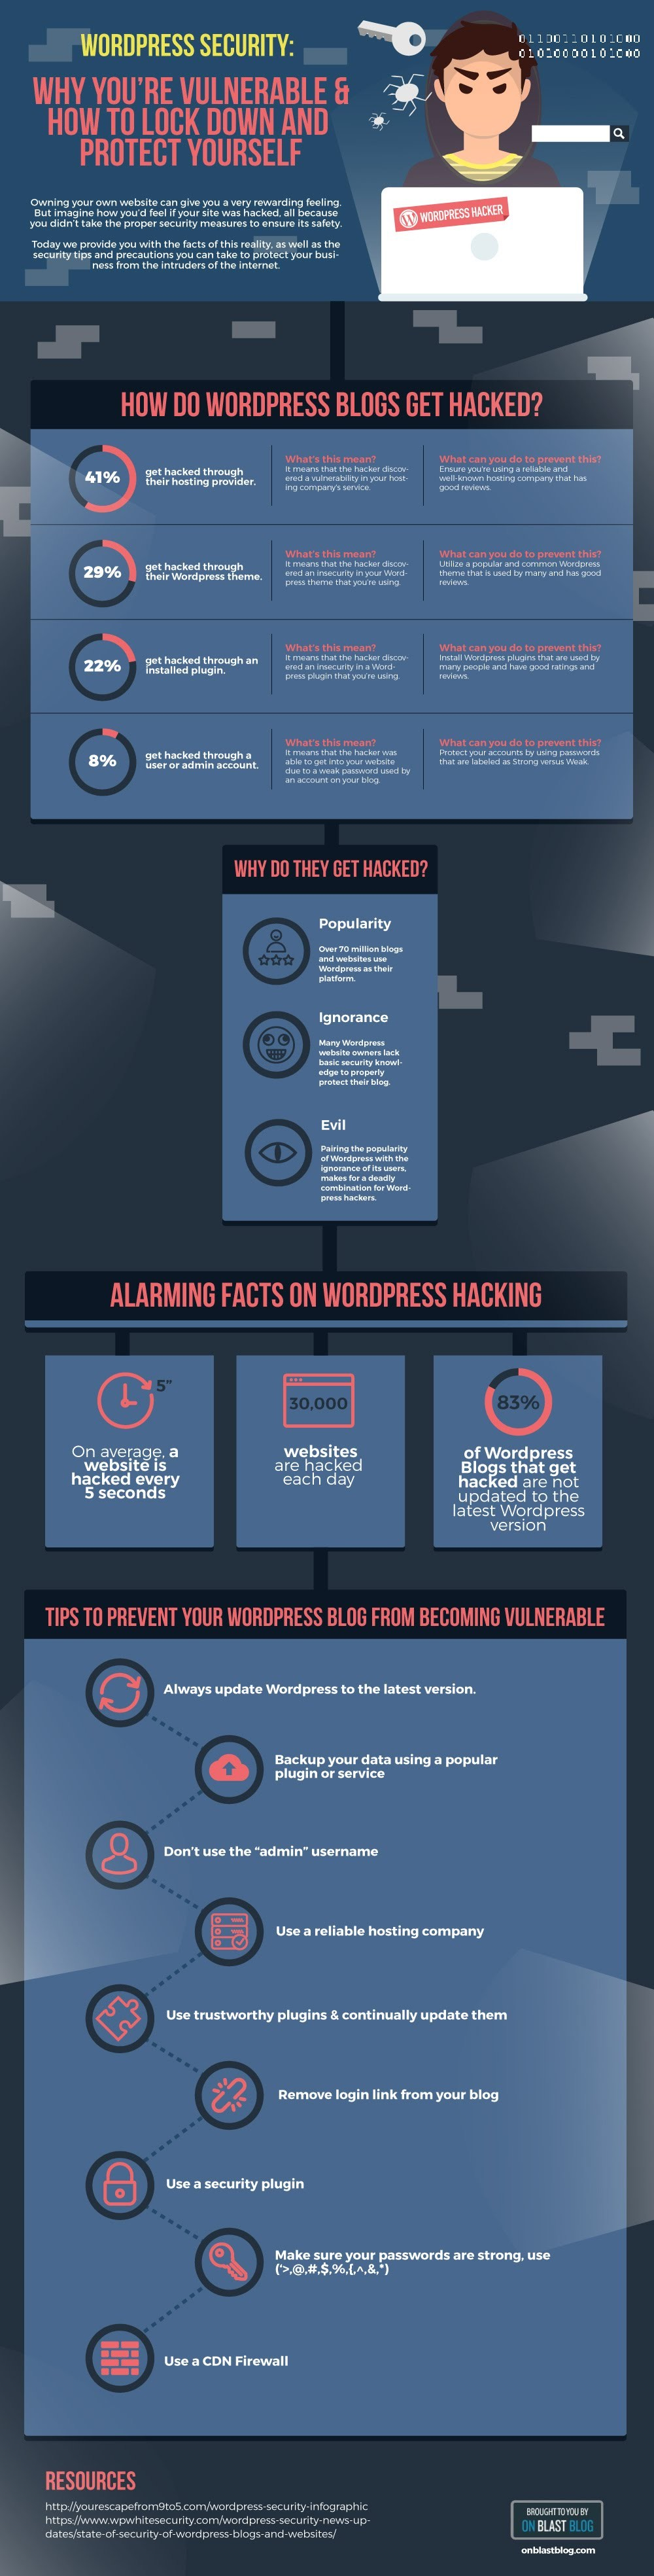 Stats, Tips And Precaution On How To Secure Your WordPress Site